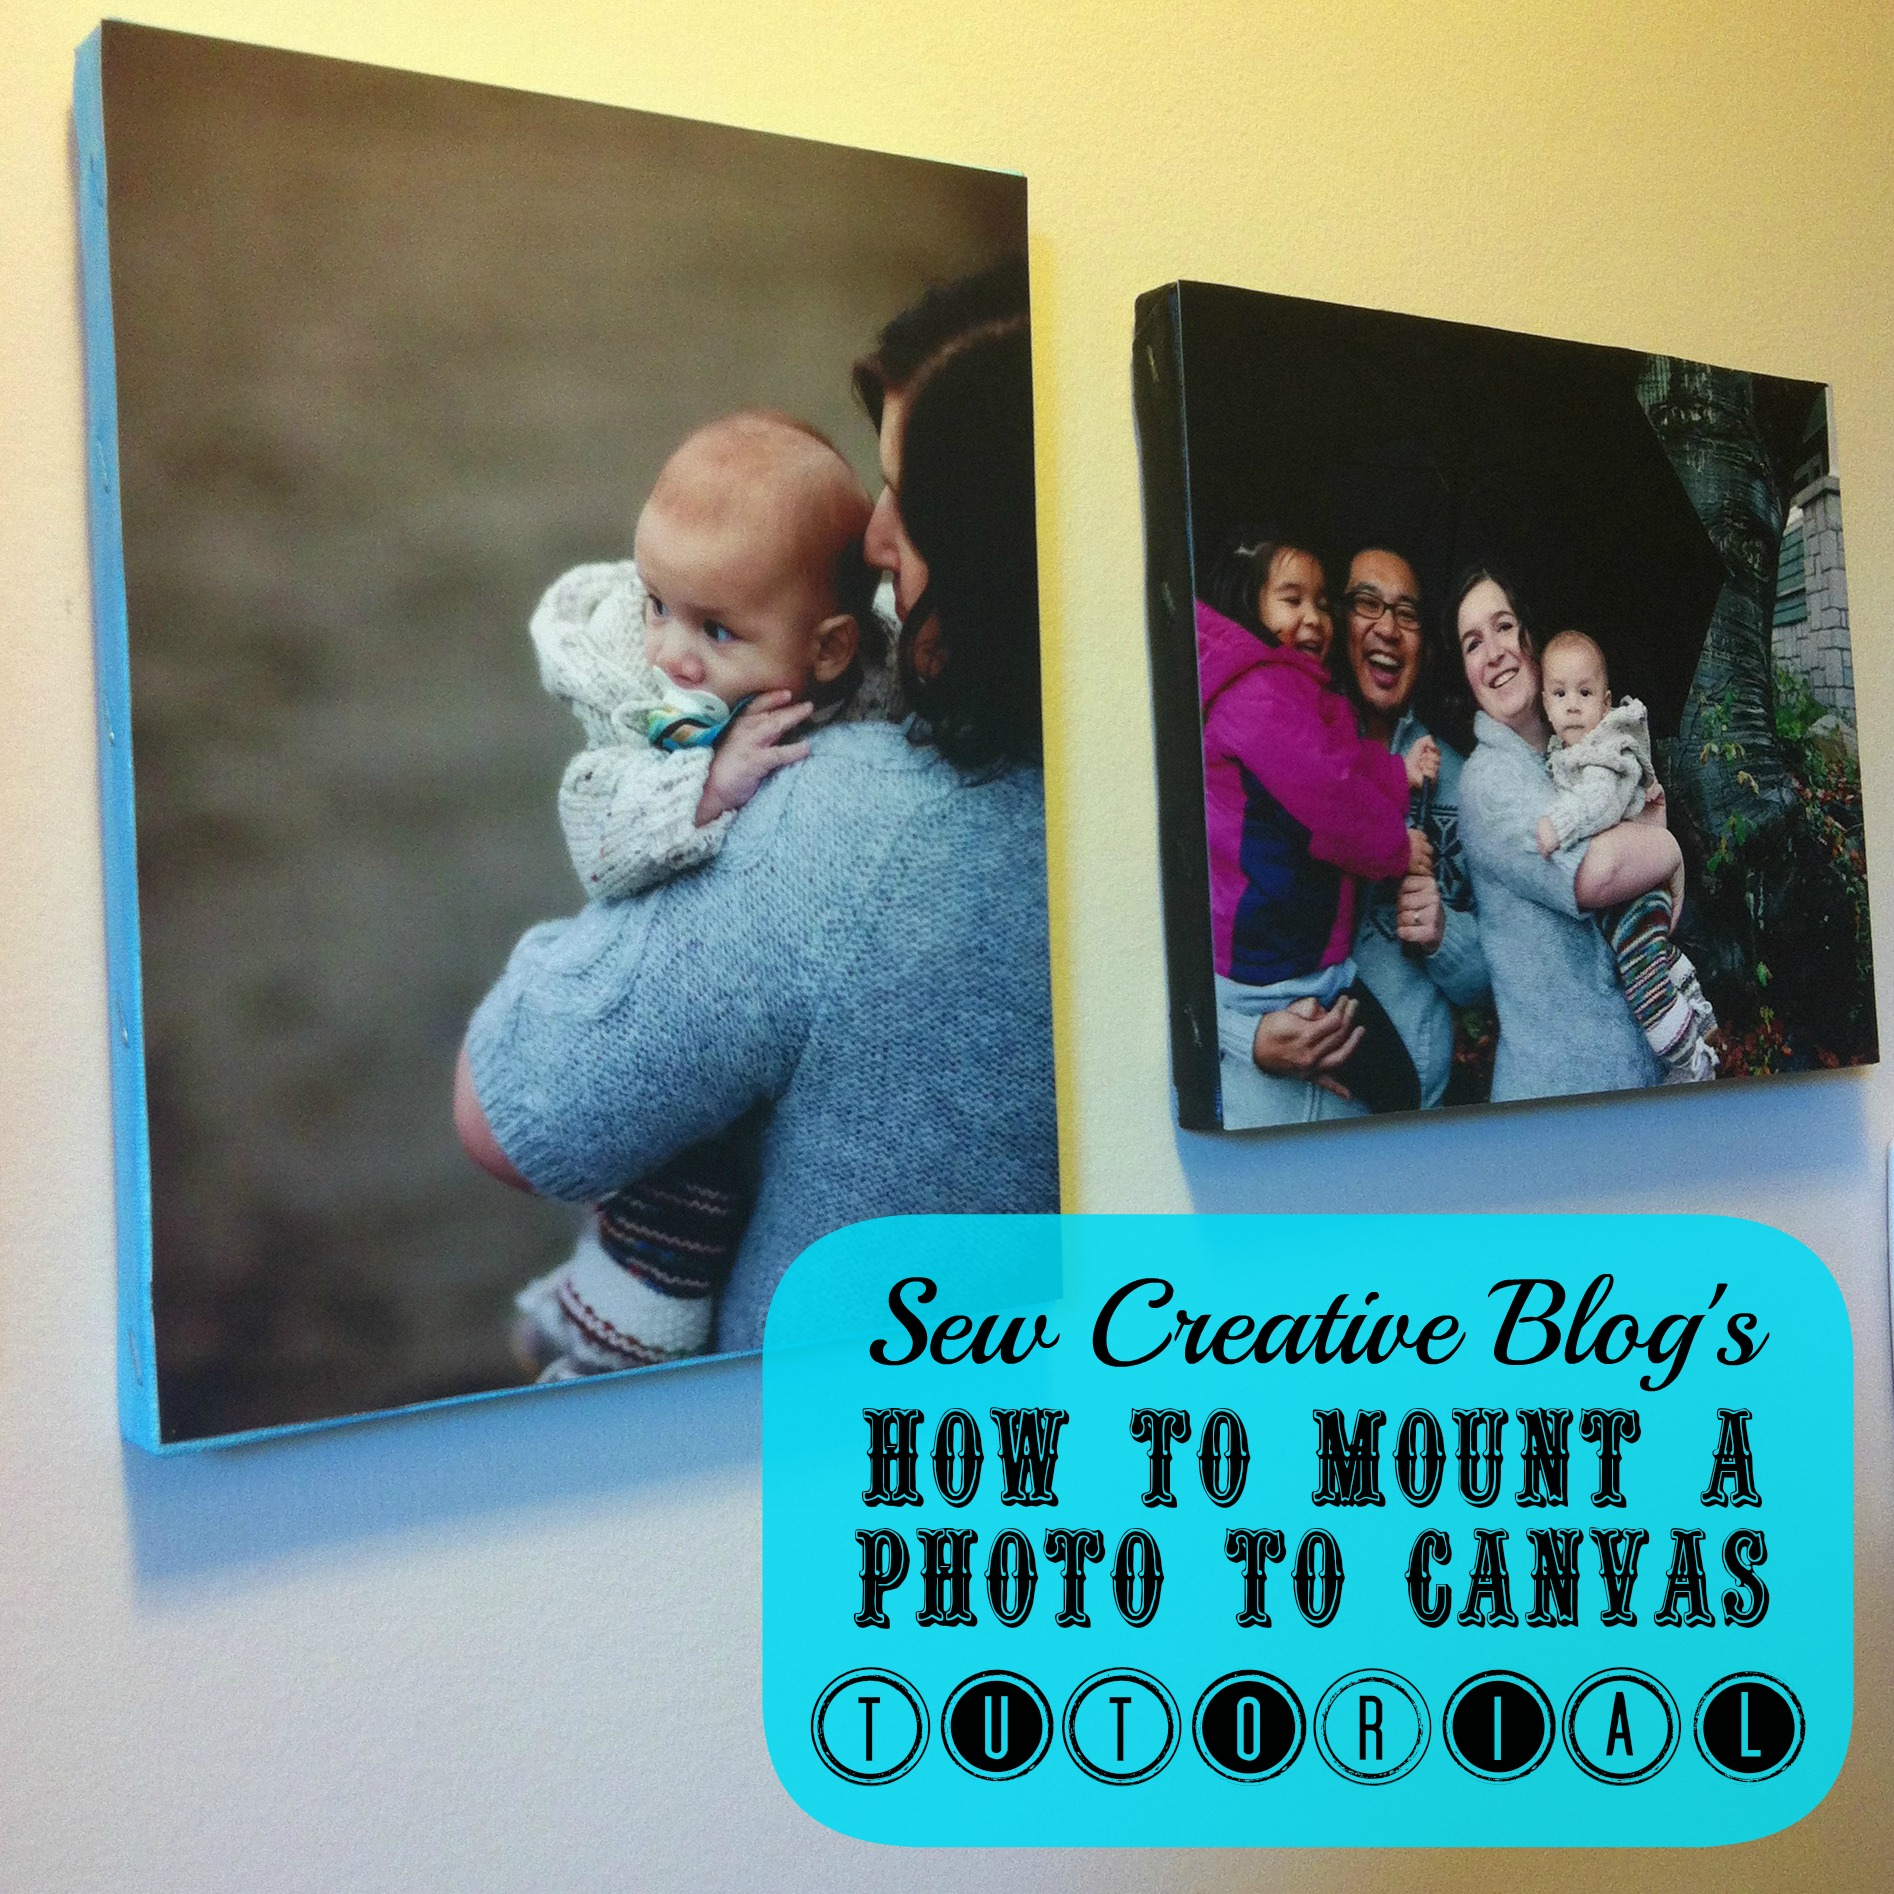 How to mount a photo to canvas tutorial 500 gift hello how to mount a photo to canvas tutorial a great handmade gift for under 5 solutioingenieria Gallery